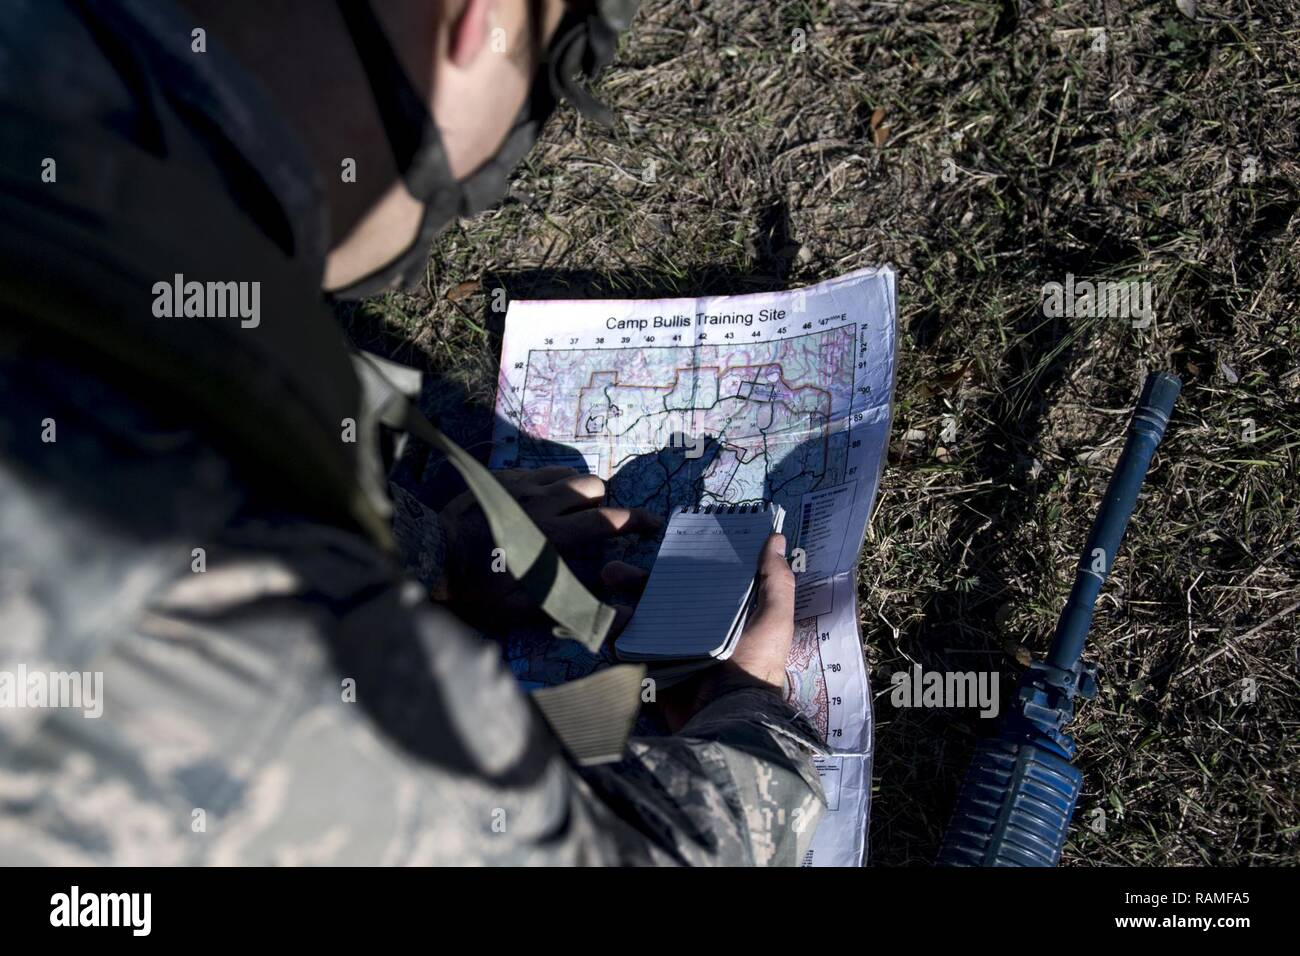 An Air Force Academy Cadet plots location points before conducting land navigation during an Air Liaison Officer Aptitude Assessment, Feb. 15, 2017, at Camp Bullis, Texas. The cadets were ambushed by cadre firing blanks multiple times during the land navigation portion of their assessment. - Stock Image